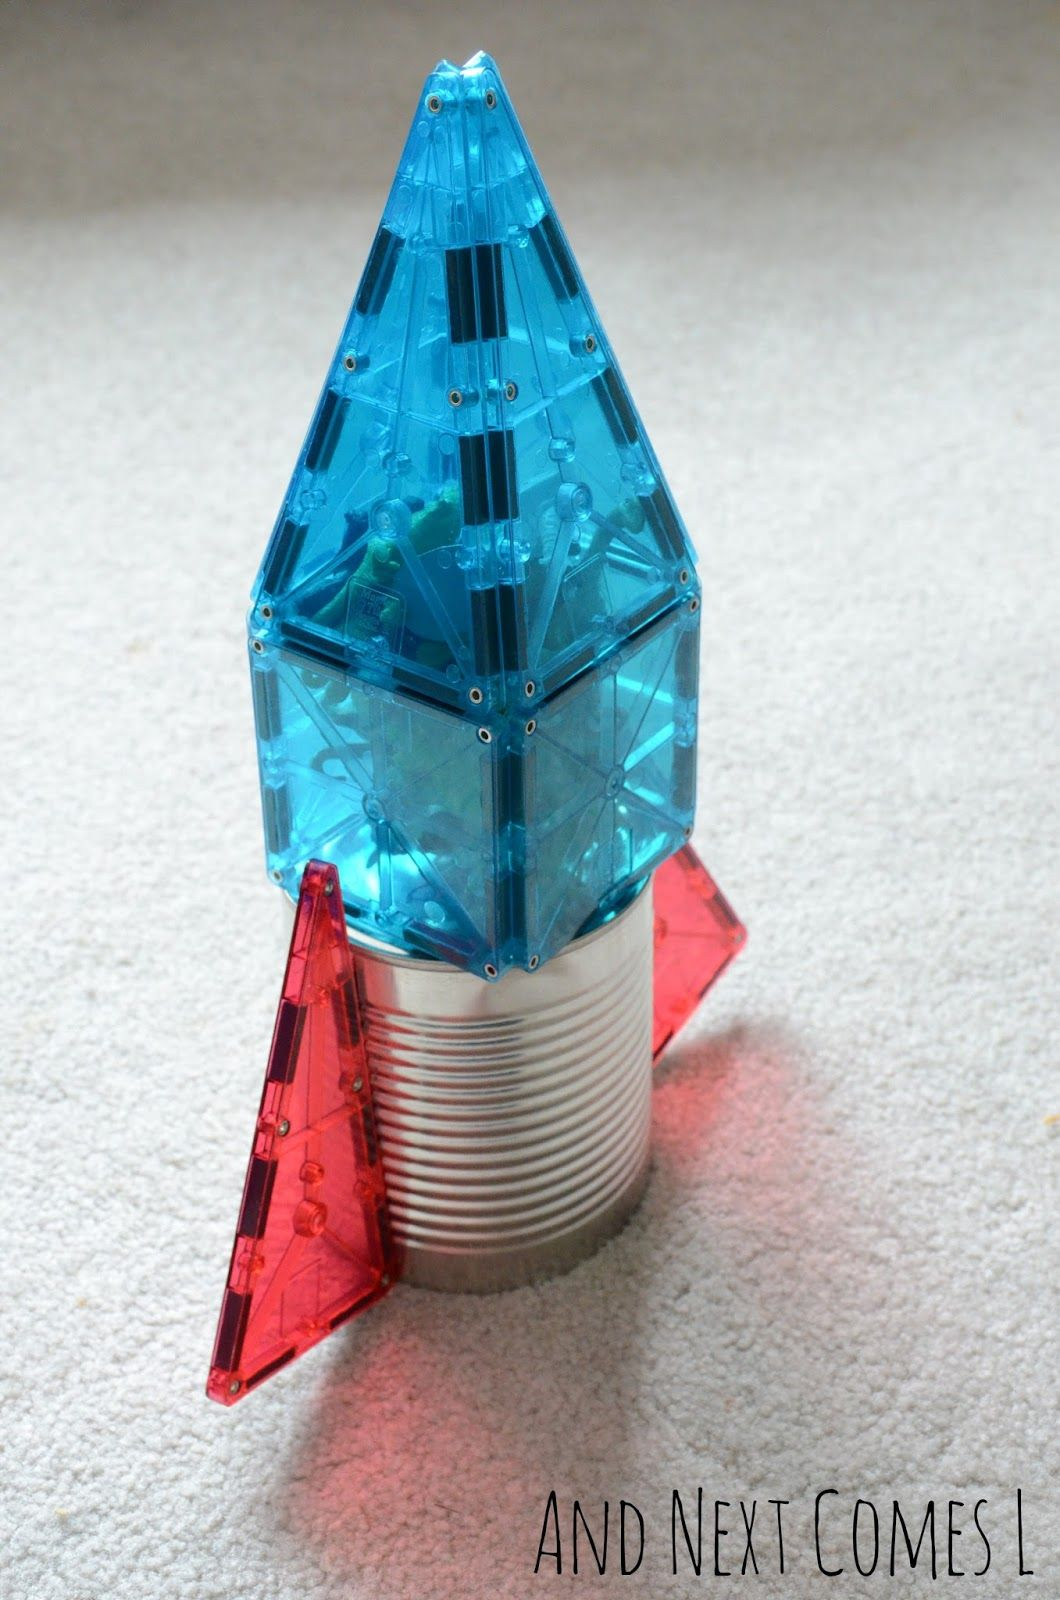 A Rocket Made From Tin Can And Magna Tiles Next Comes L